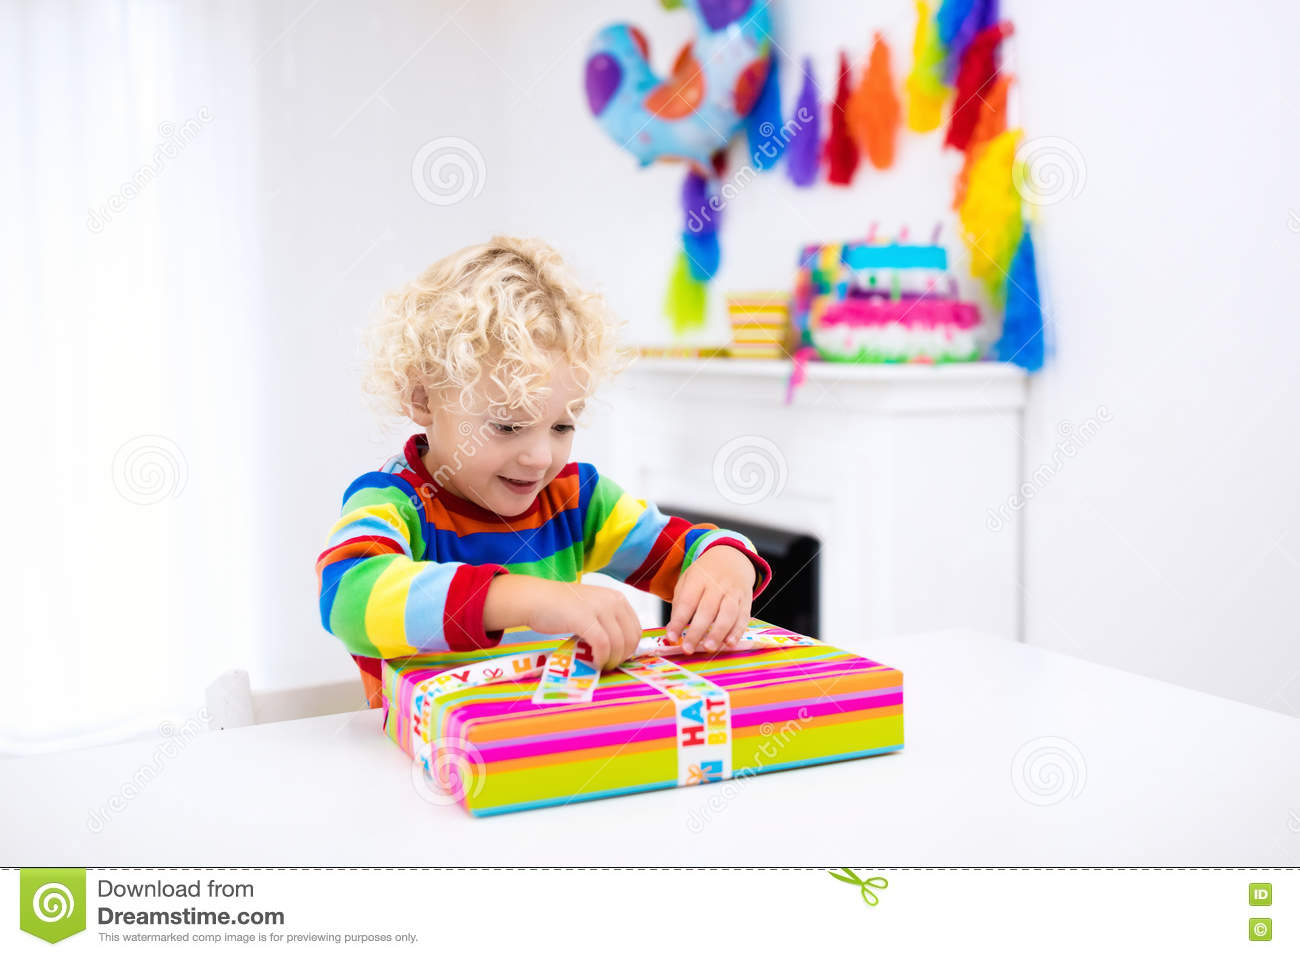 Child Celebrating Third Birthday Little Boy Opening Presents And Holding Balloons In Decorated Room Party For Kids